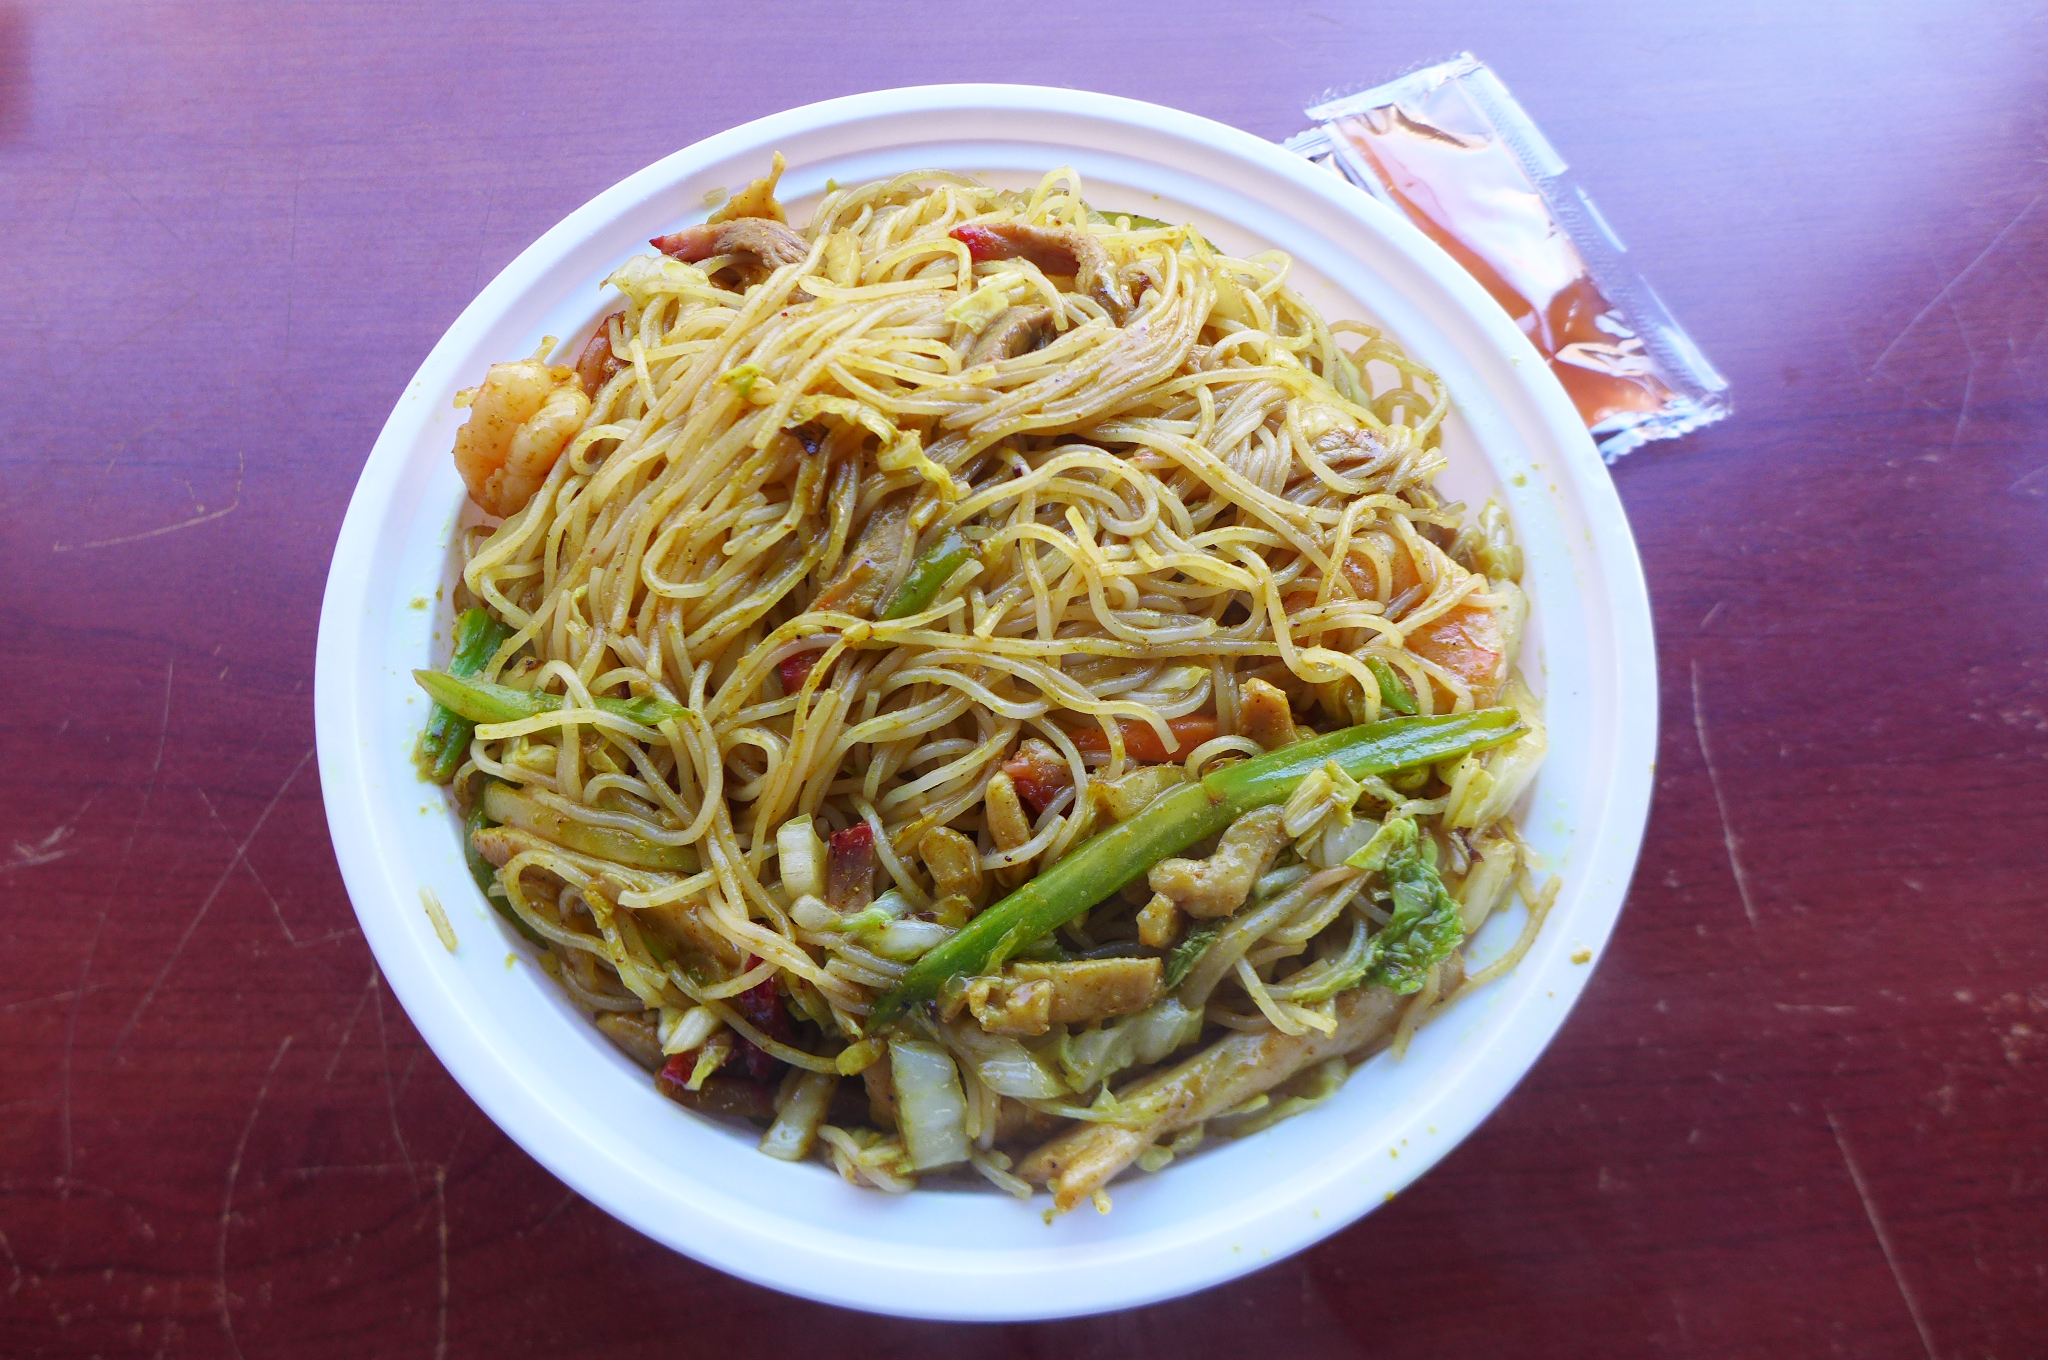 A white plastic bowl of Chinese noodles.